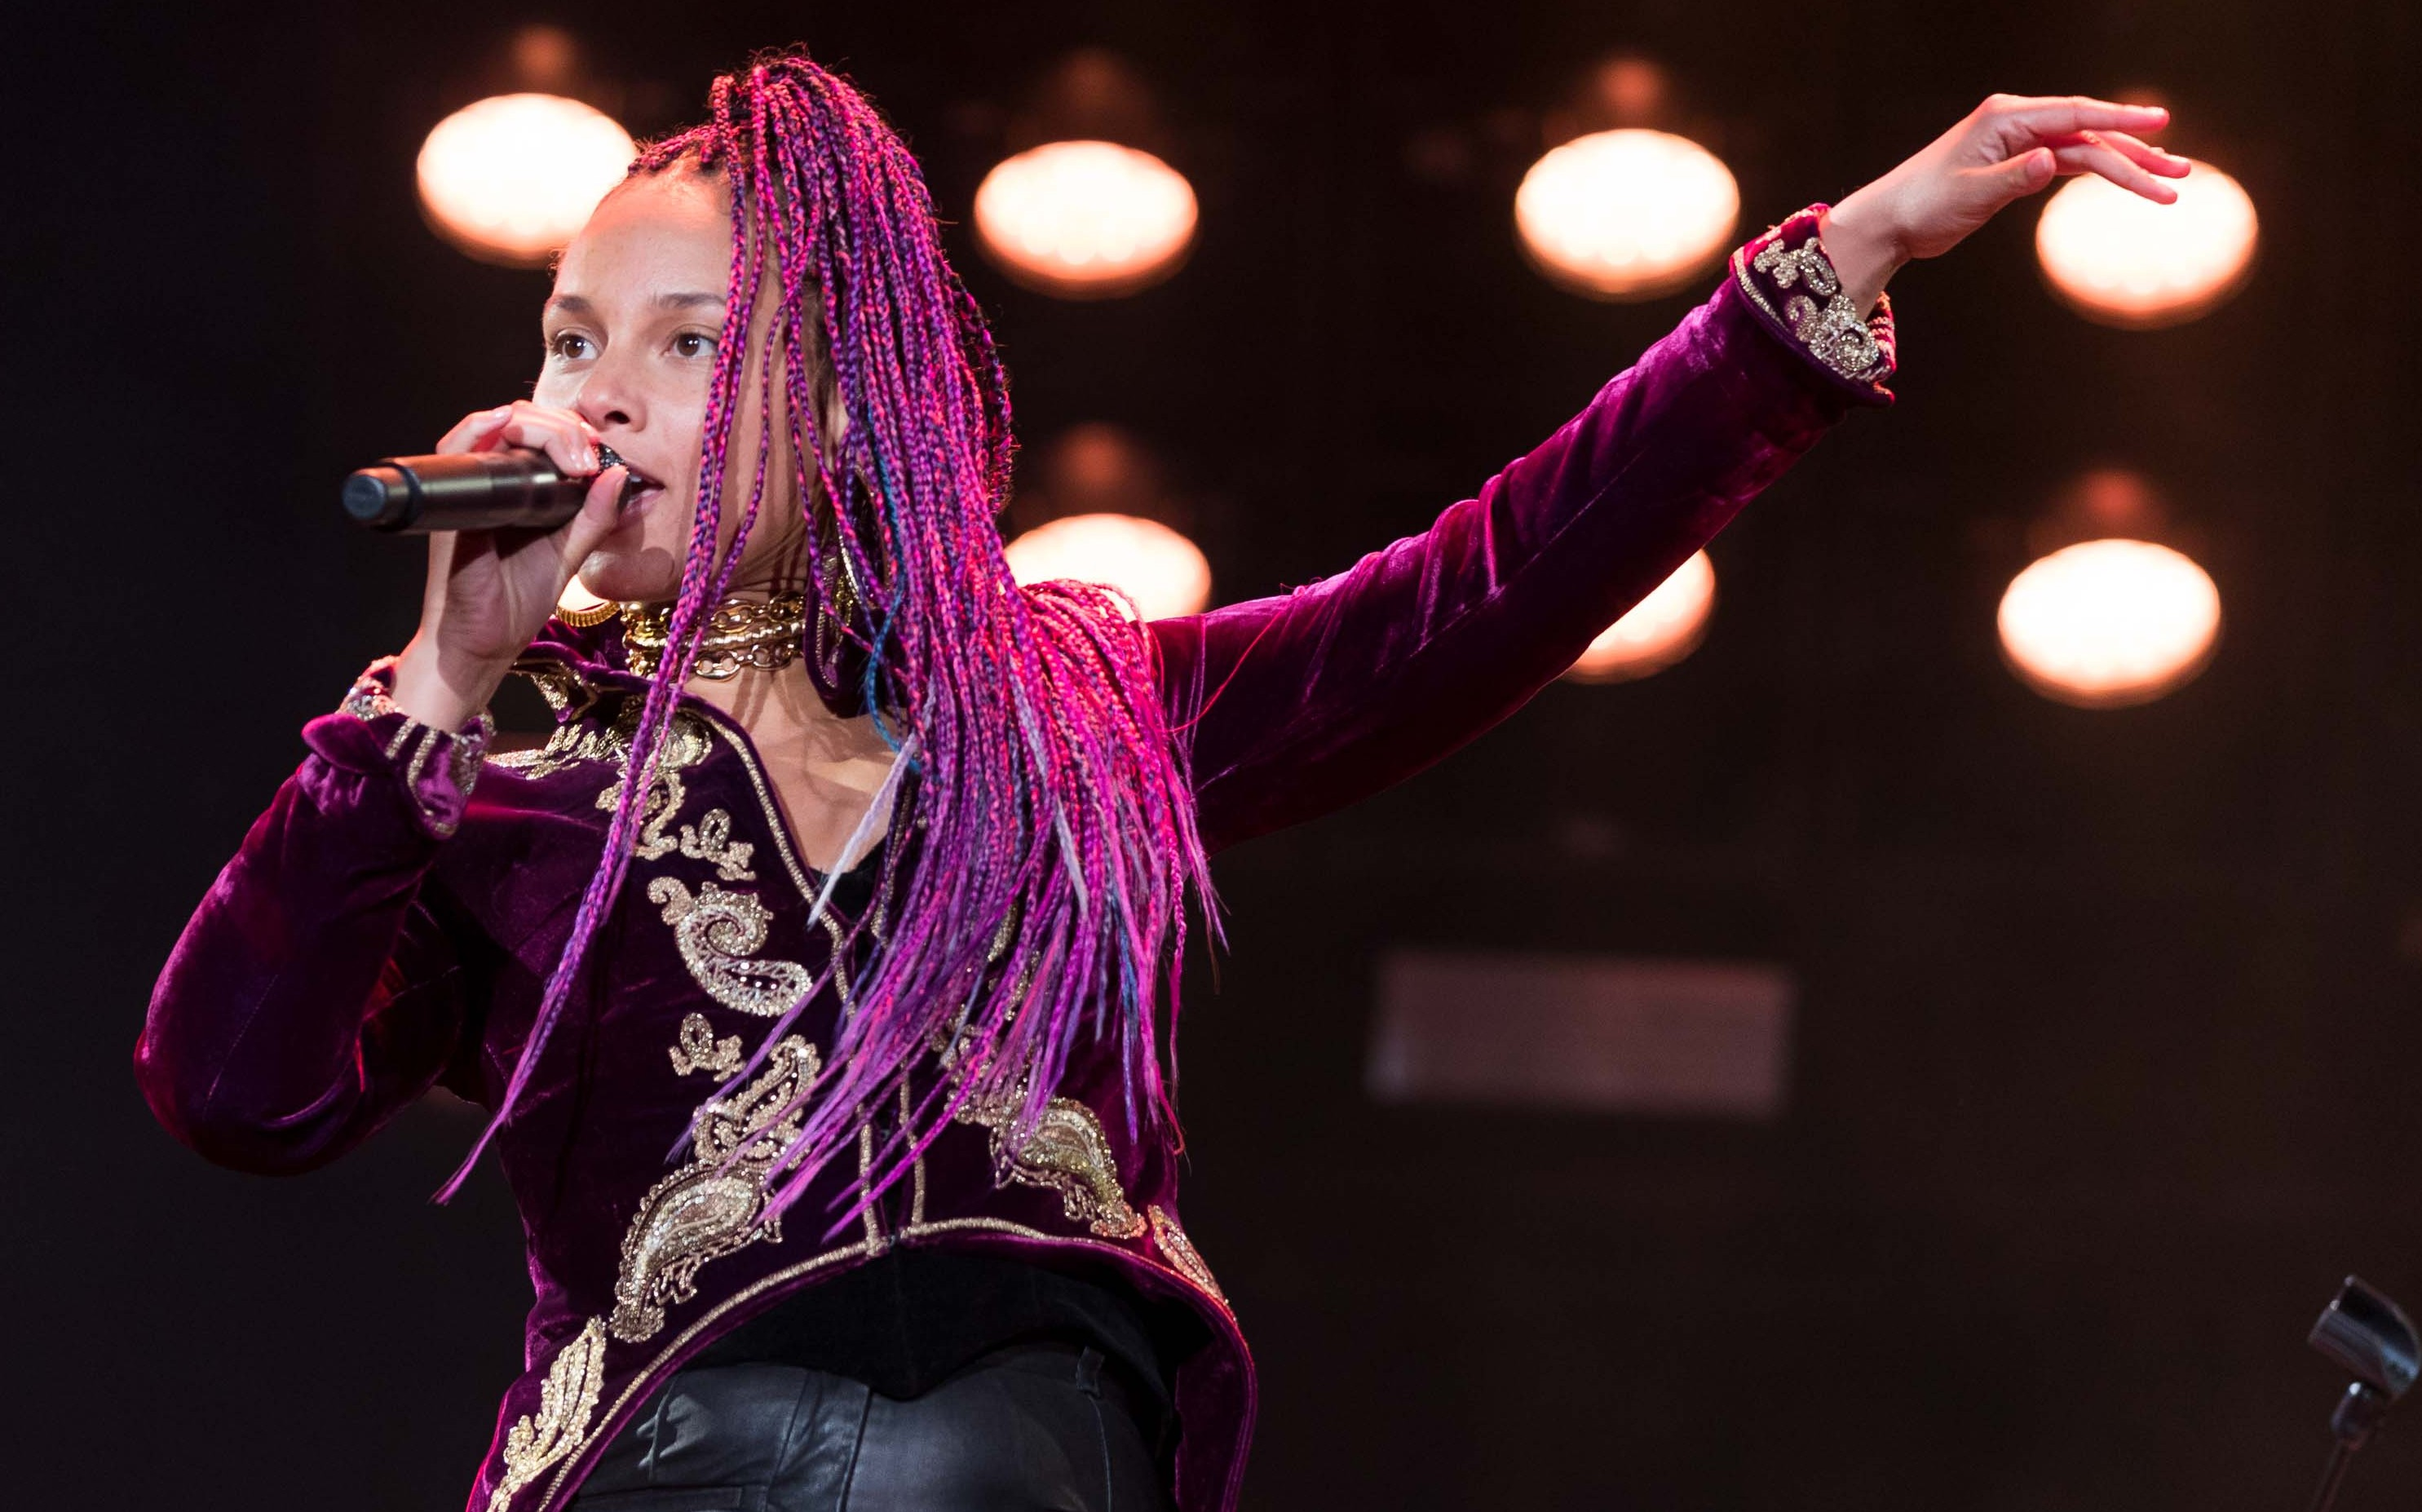 Alicia Keys rocking pink locks as she performed at a benefit concert for the UCSF Benioff Children's Hospital. (Photo: WENN)